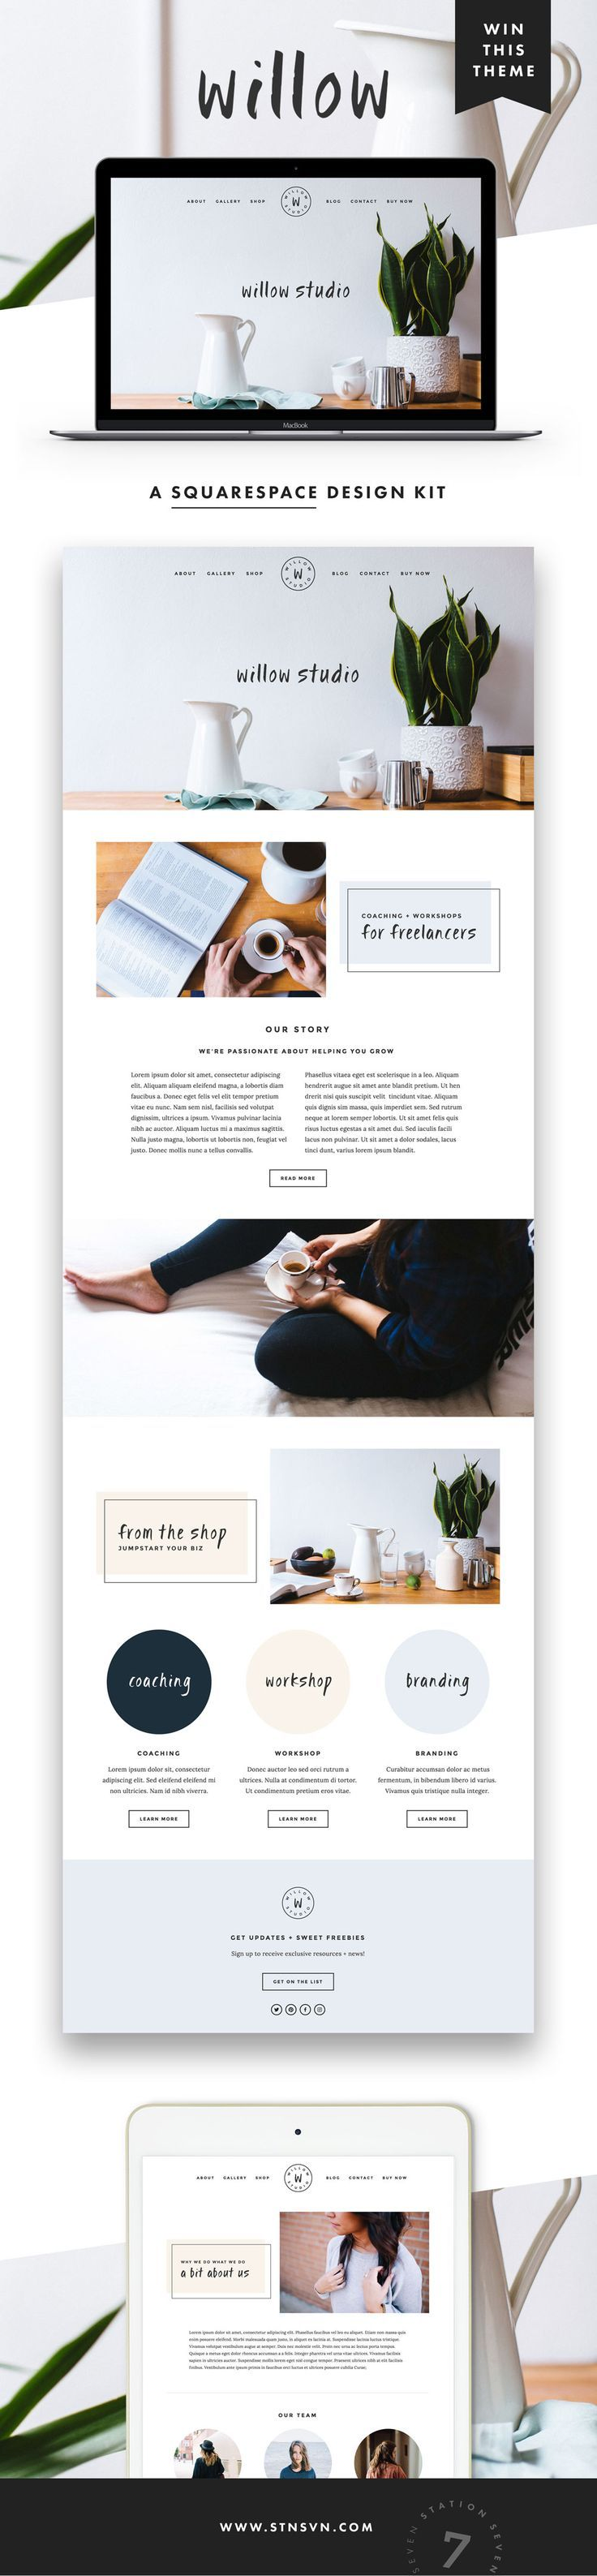 Willow Squarespace Kit – Station Seven: plantillas de Squarespace, temas de WordPress y recursos gratuitos para emprendedores creativos   – ╳  WEBDESIGN  ╳